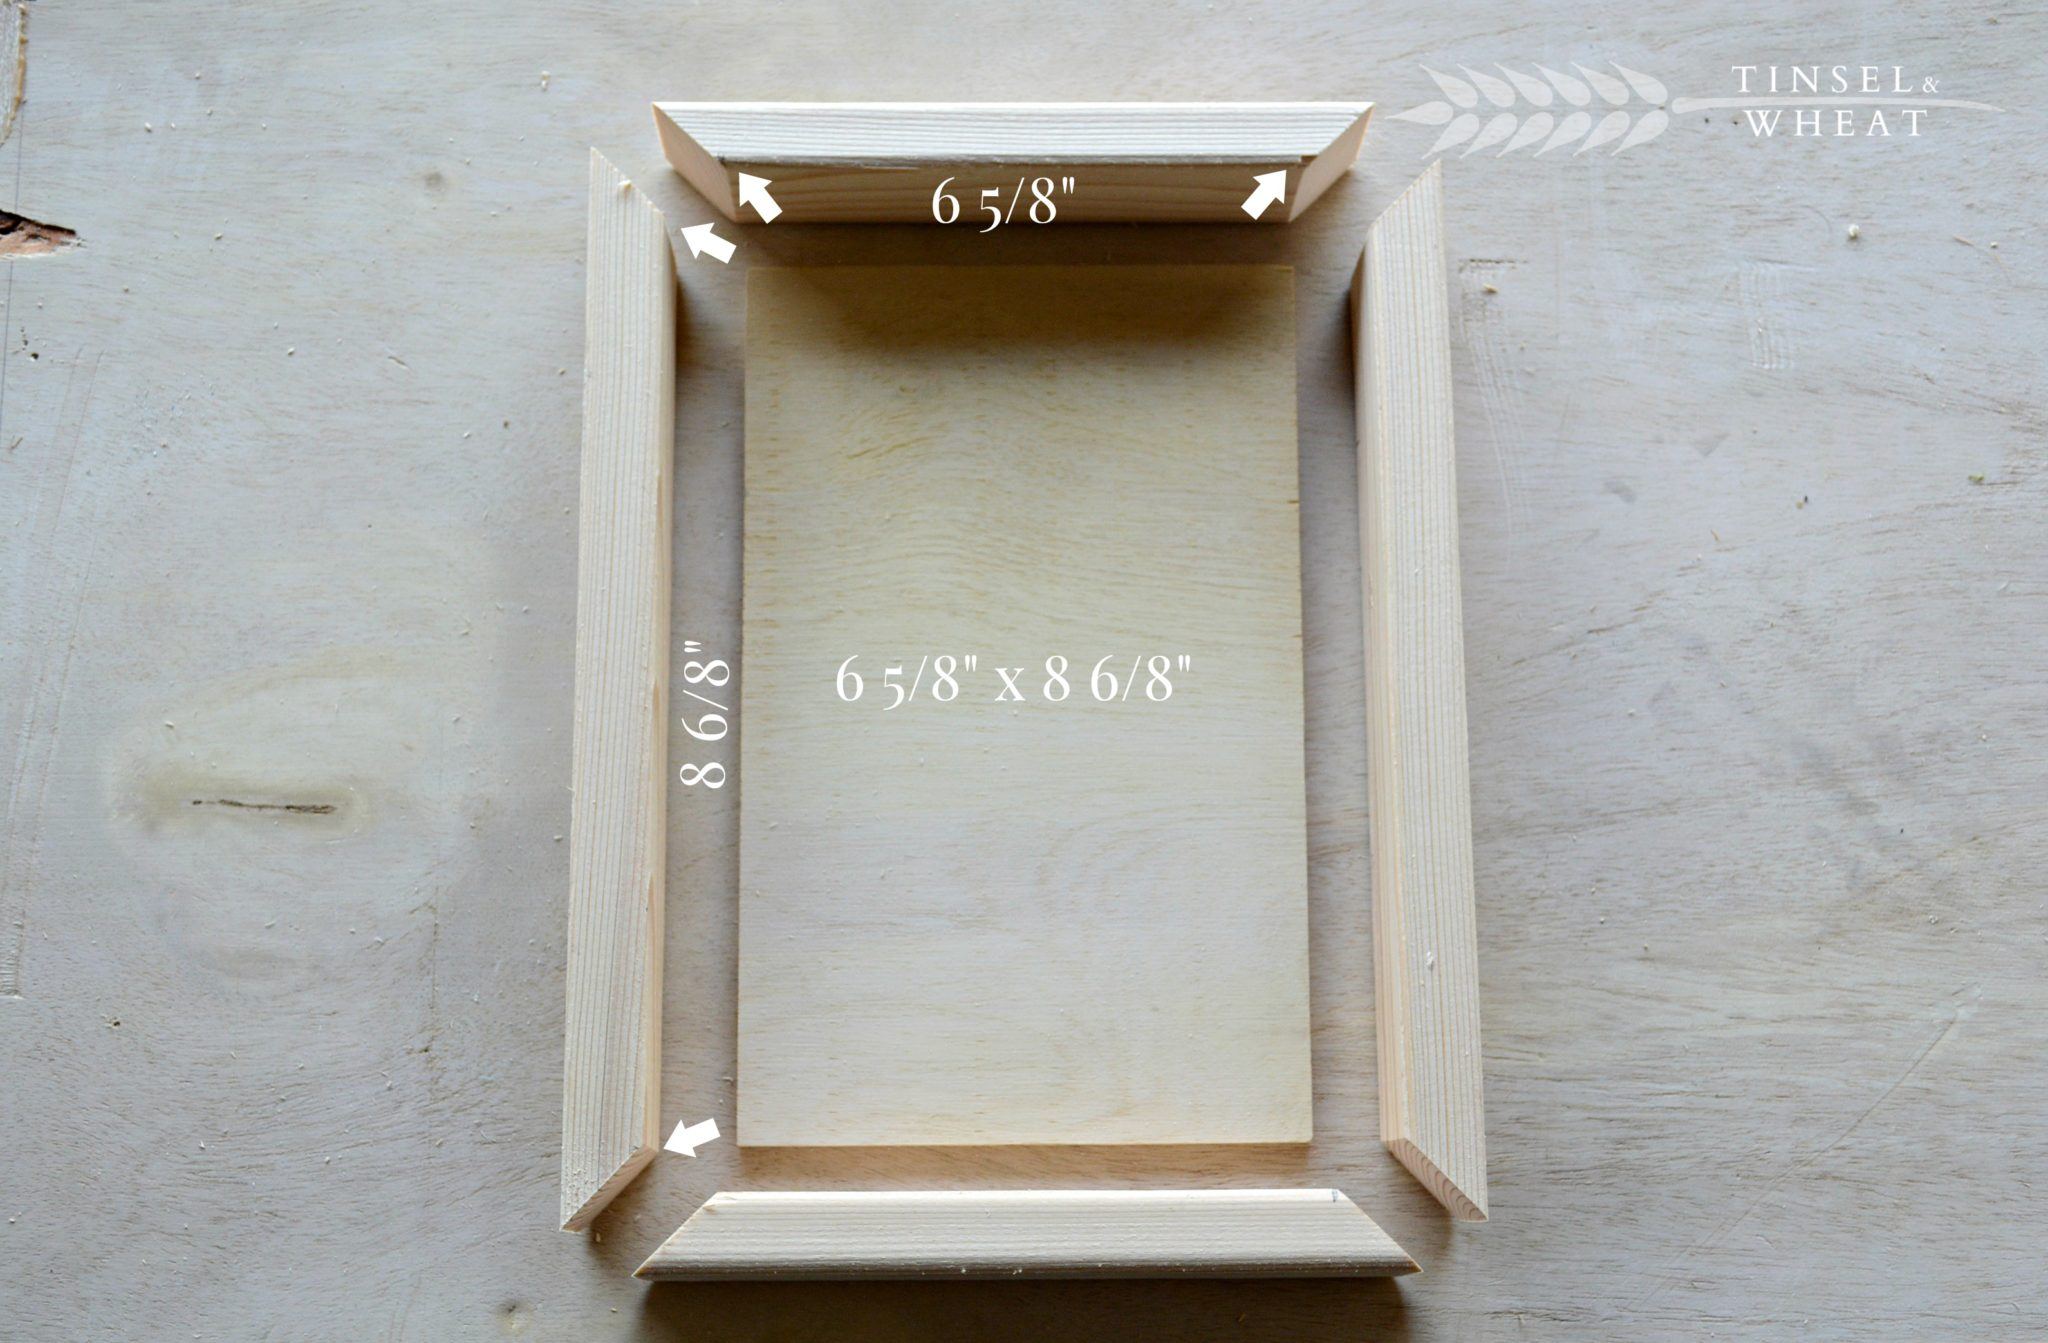 How to make a felt letter board tinsel wheat cut all frame pieces and letter board with your miter saw spiritdancerdesigns Images